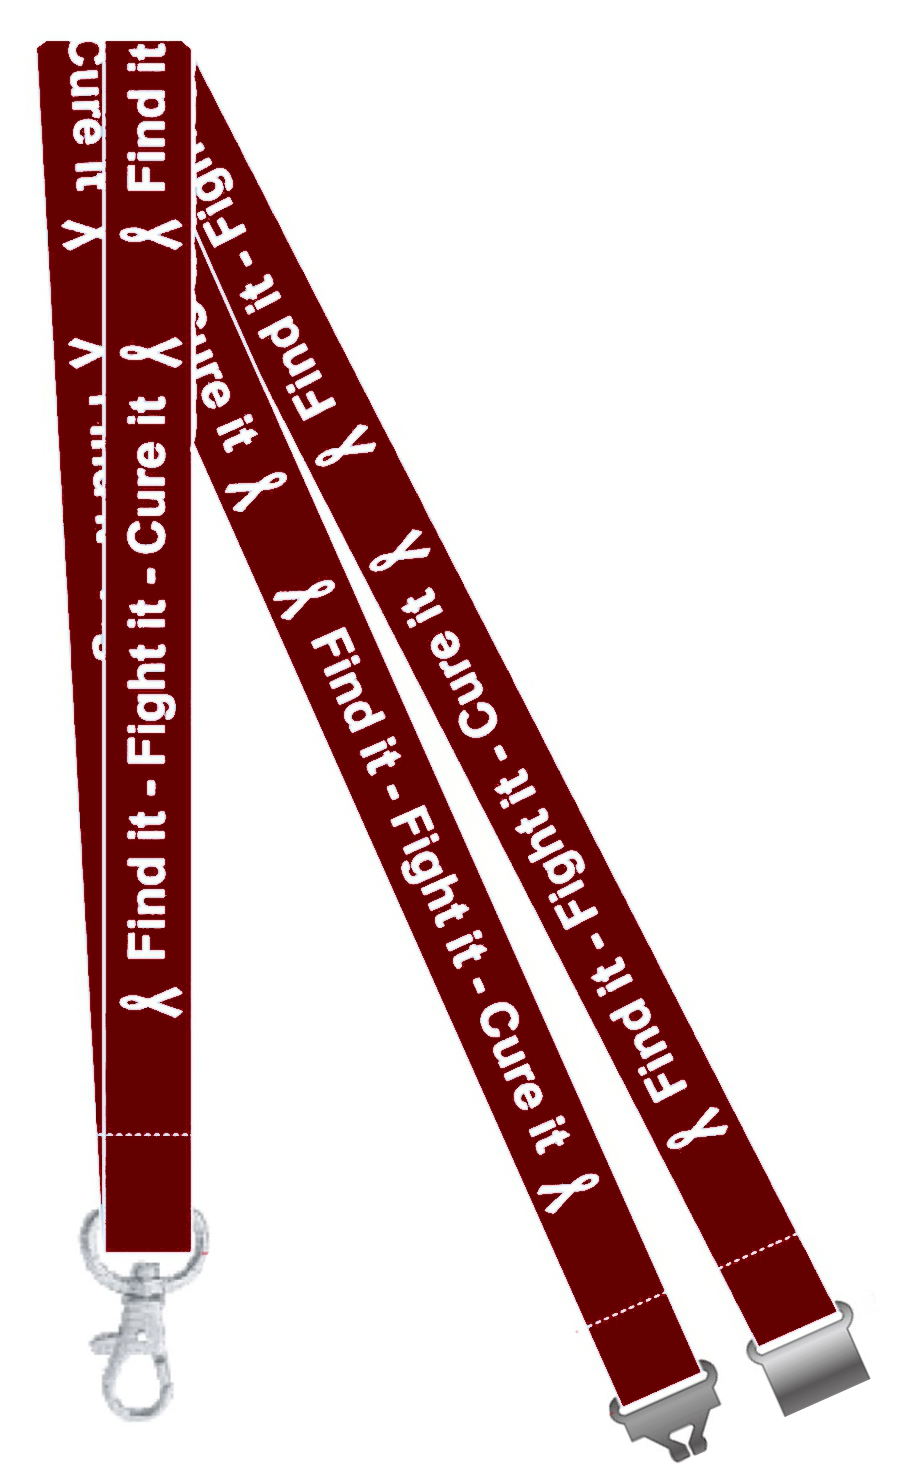 Find it, Fight it, Cure it multiple myeloma Awareness Lanyard